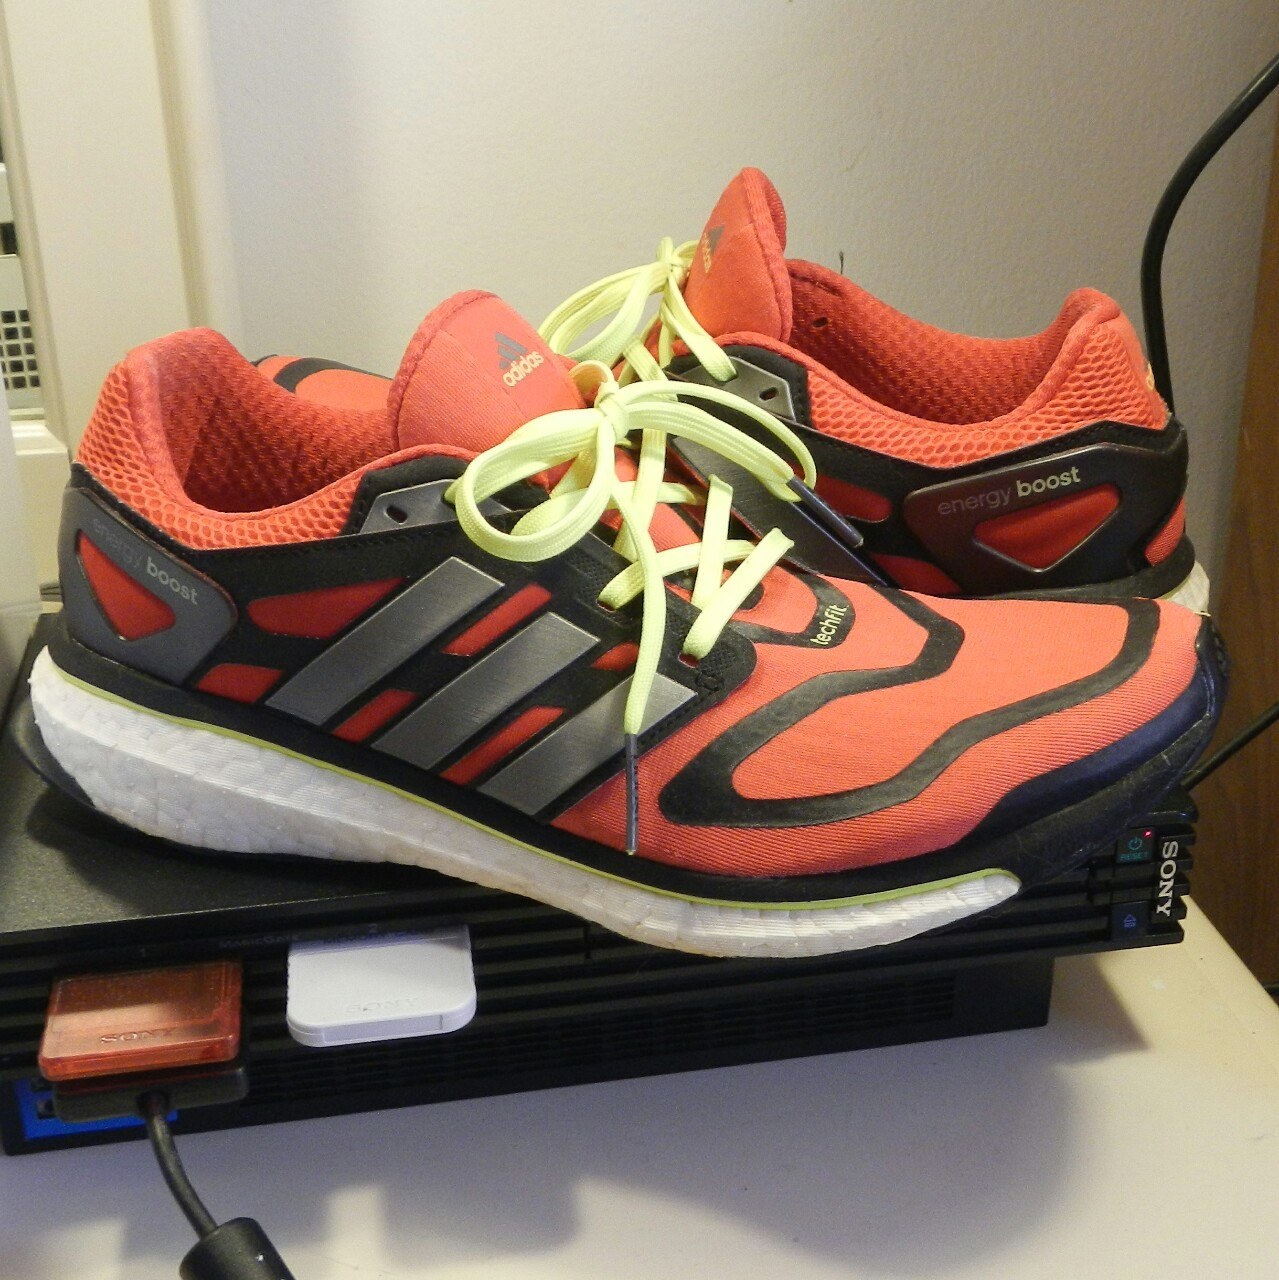 vacío unidad Dedicar  Adidas Energy Boost 1 in Red with Hints of Neon. Mi... - Depop